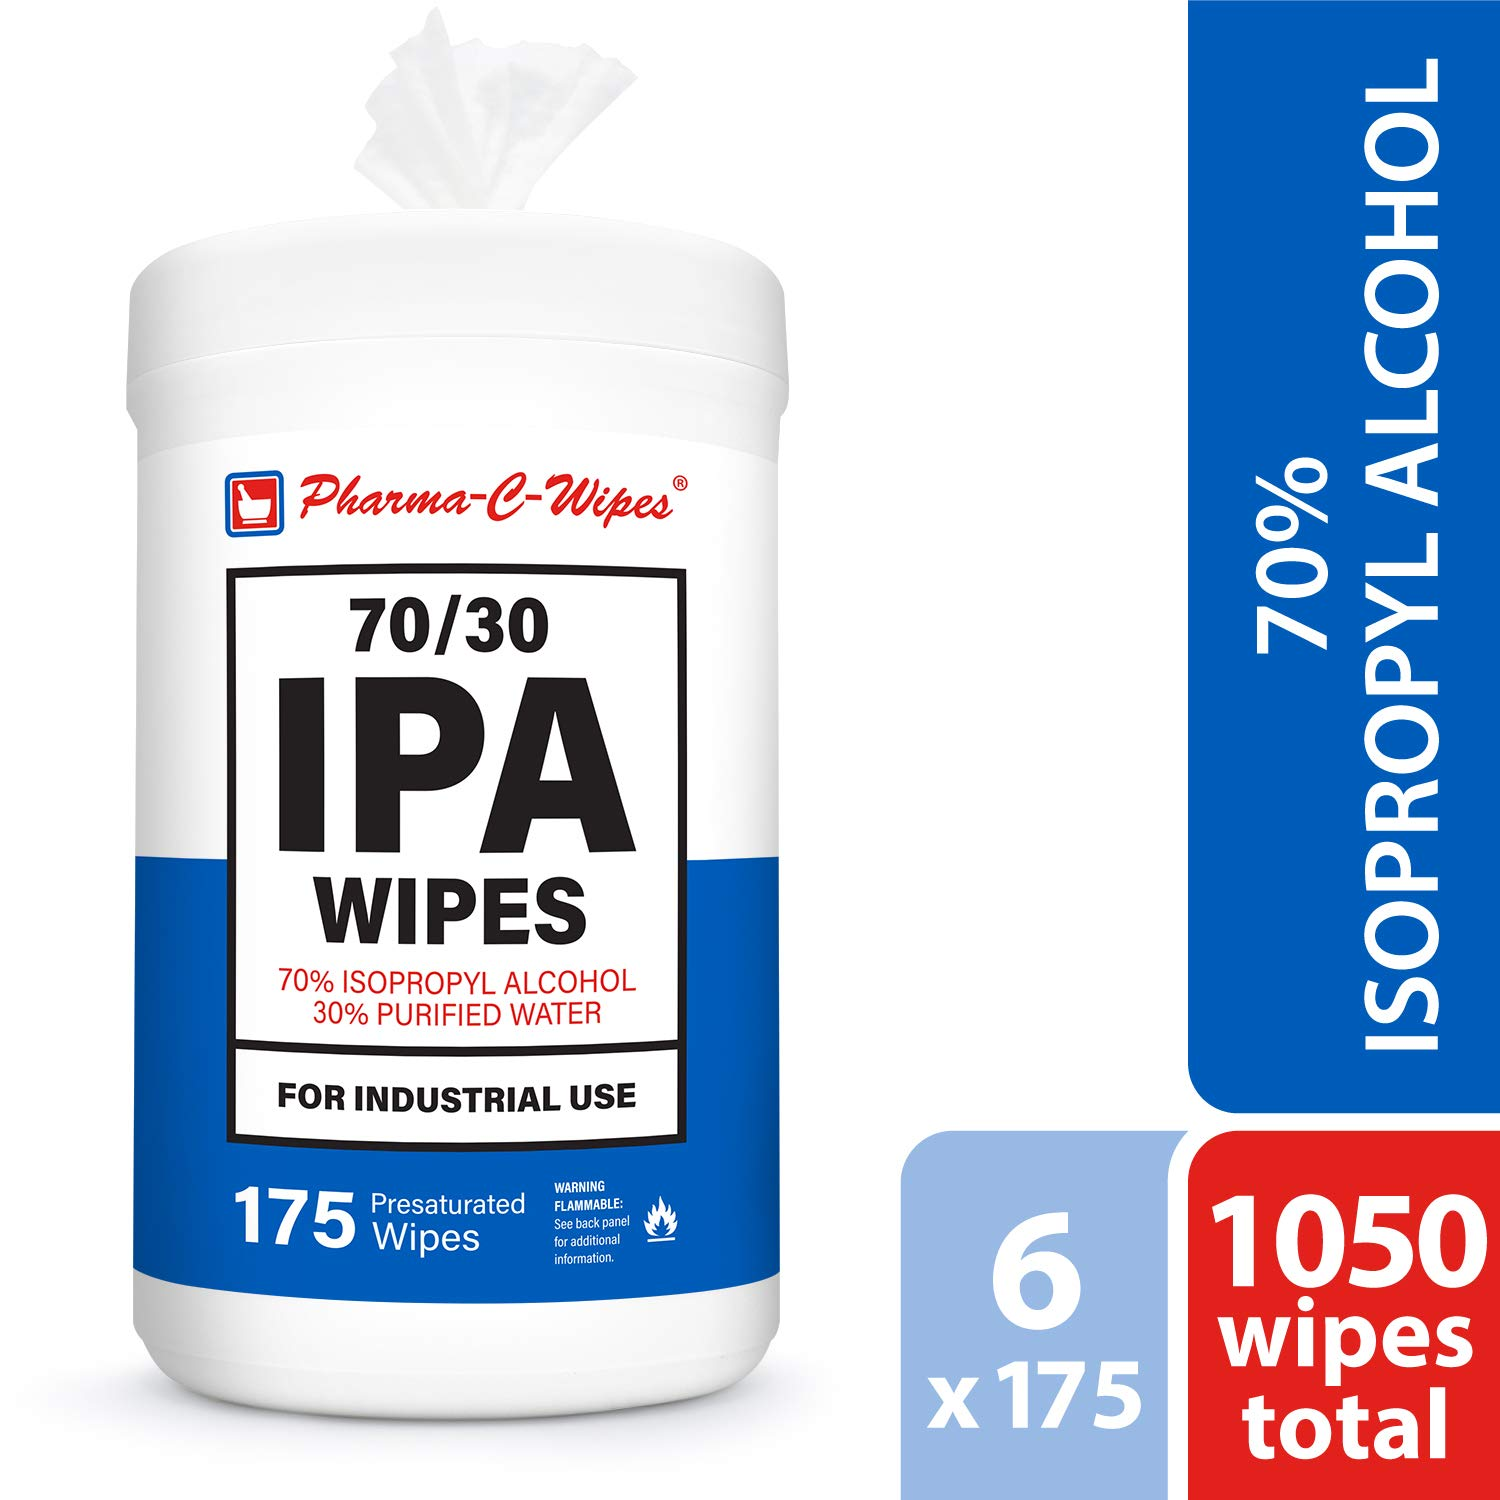 Case of 6 Canisters Pharma-C-Wipes 70/% Isopropyl Alcohol Wipes 175 Count Milk Check IPA equivelent